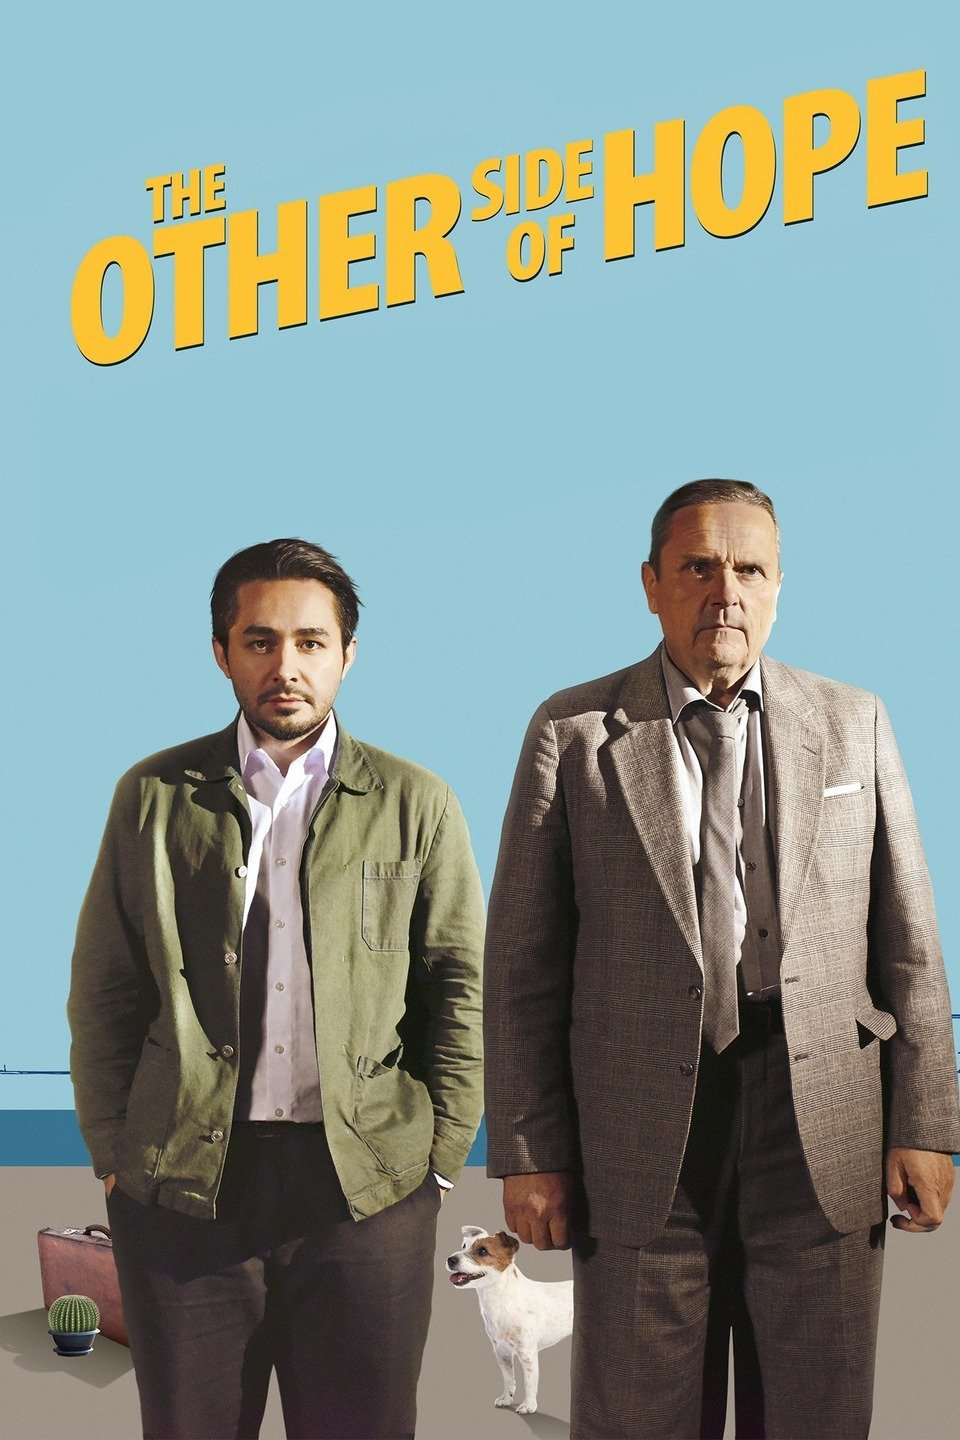 - THE OTHER SIDE OF HOPE, 2017 (Finland)Winner of Silver Bear for Best Director at the Berlin International Film Festival, The Other Side of Hope interlaces the struggles of two men who have fled their homes. The first is Khaled, a Syrian asylum seeker who arrives in Helsinki as a stowaway on a coal freighter. The second escapee doesn't undertake quite such a hazardous journey. Wikström walks out on his alcoholic wife, wins a fortune at poker and buys a failing restaurant called the Golden Pint.Despite the tragic situation it portrays, the film is full of humour and food-for-thought, making it a pure delight.Director: Aki KaurismäkiLength: 1h 40 minsWhere and when: Genesis Cinema, Saturday 2 December, 18:00 - screened alongside Roots, Only Roots.Price and tickets: £6.5-10; buy a ticket here.Q&A: Saad Eddine Said (Battersea Art Centre), Katie Barlow (photographer and documentarist) and Lucy Carrigan (International Rescue Committee)